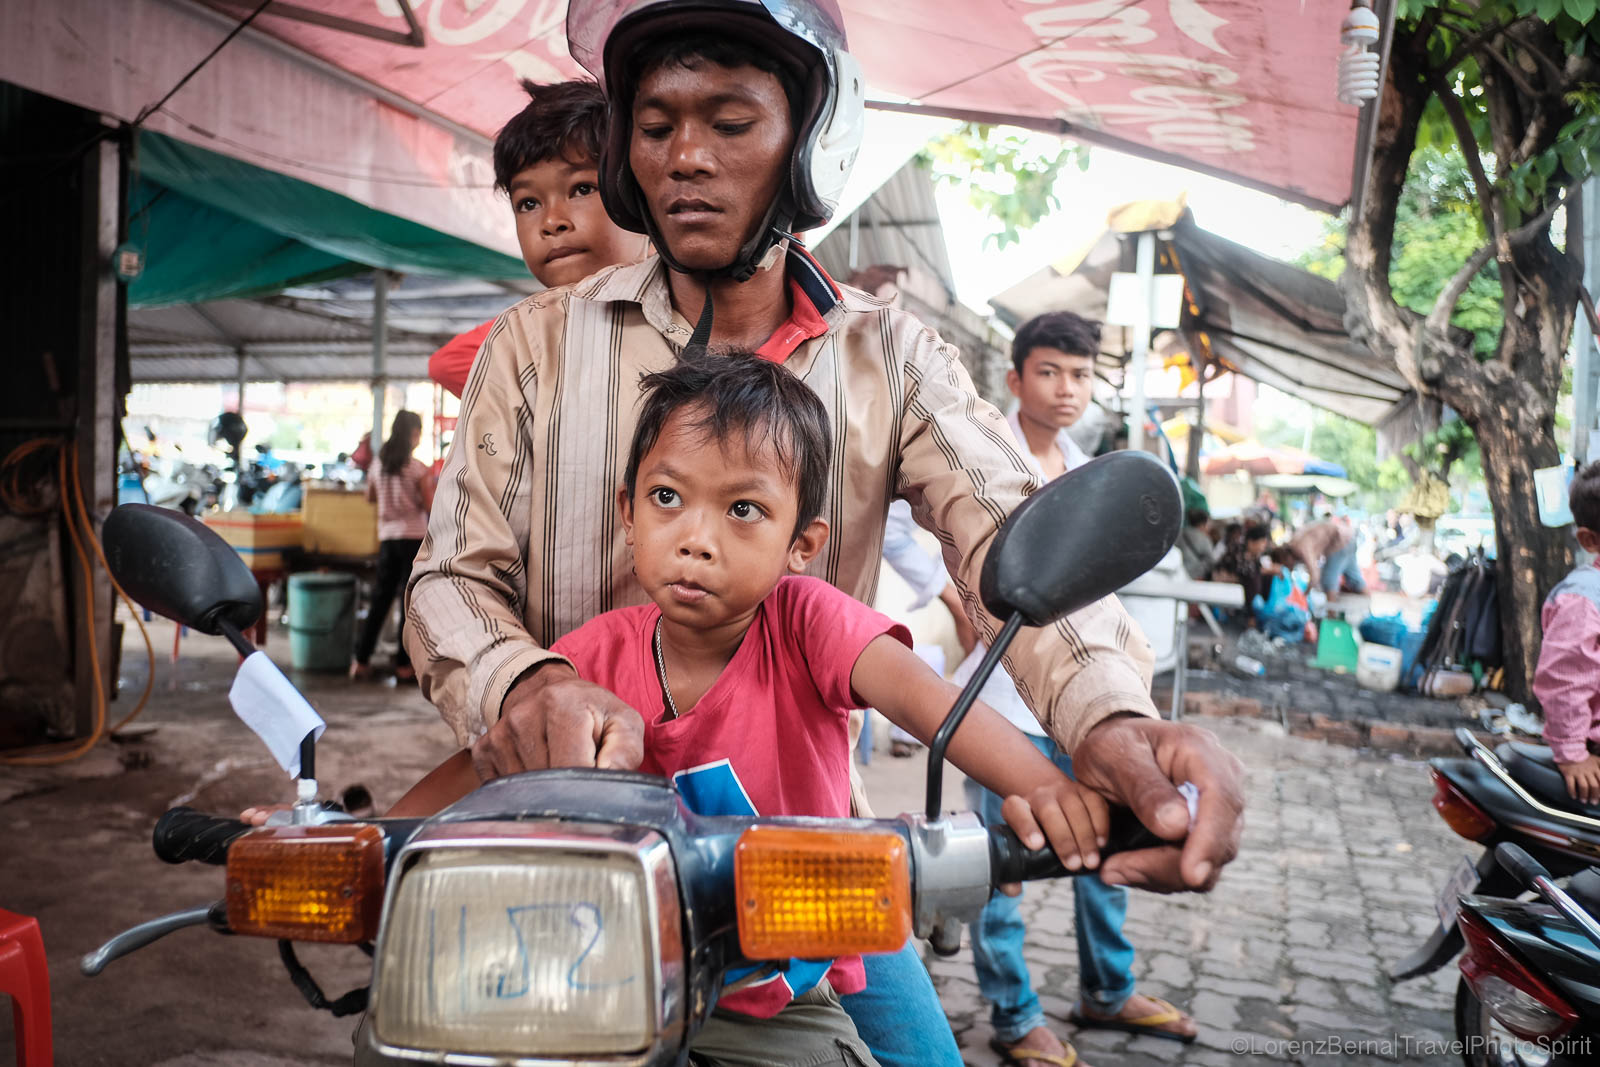 Family on a motorbike in Cambodia